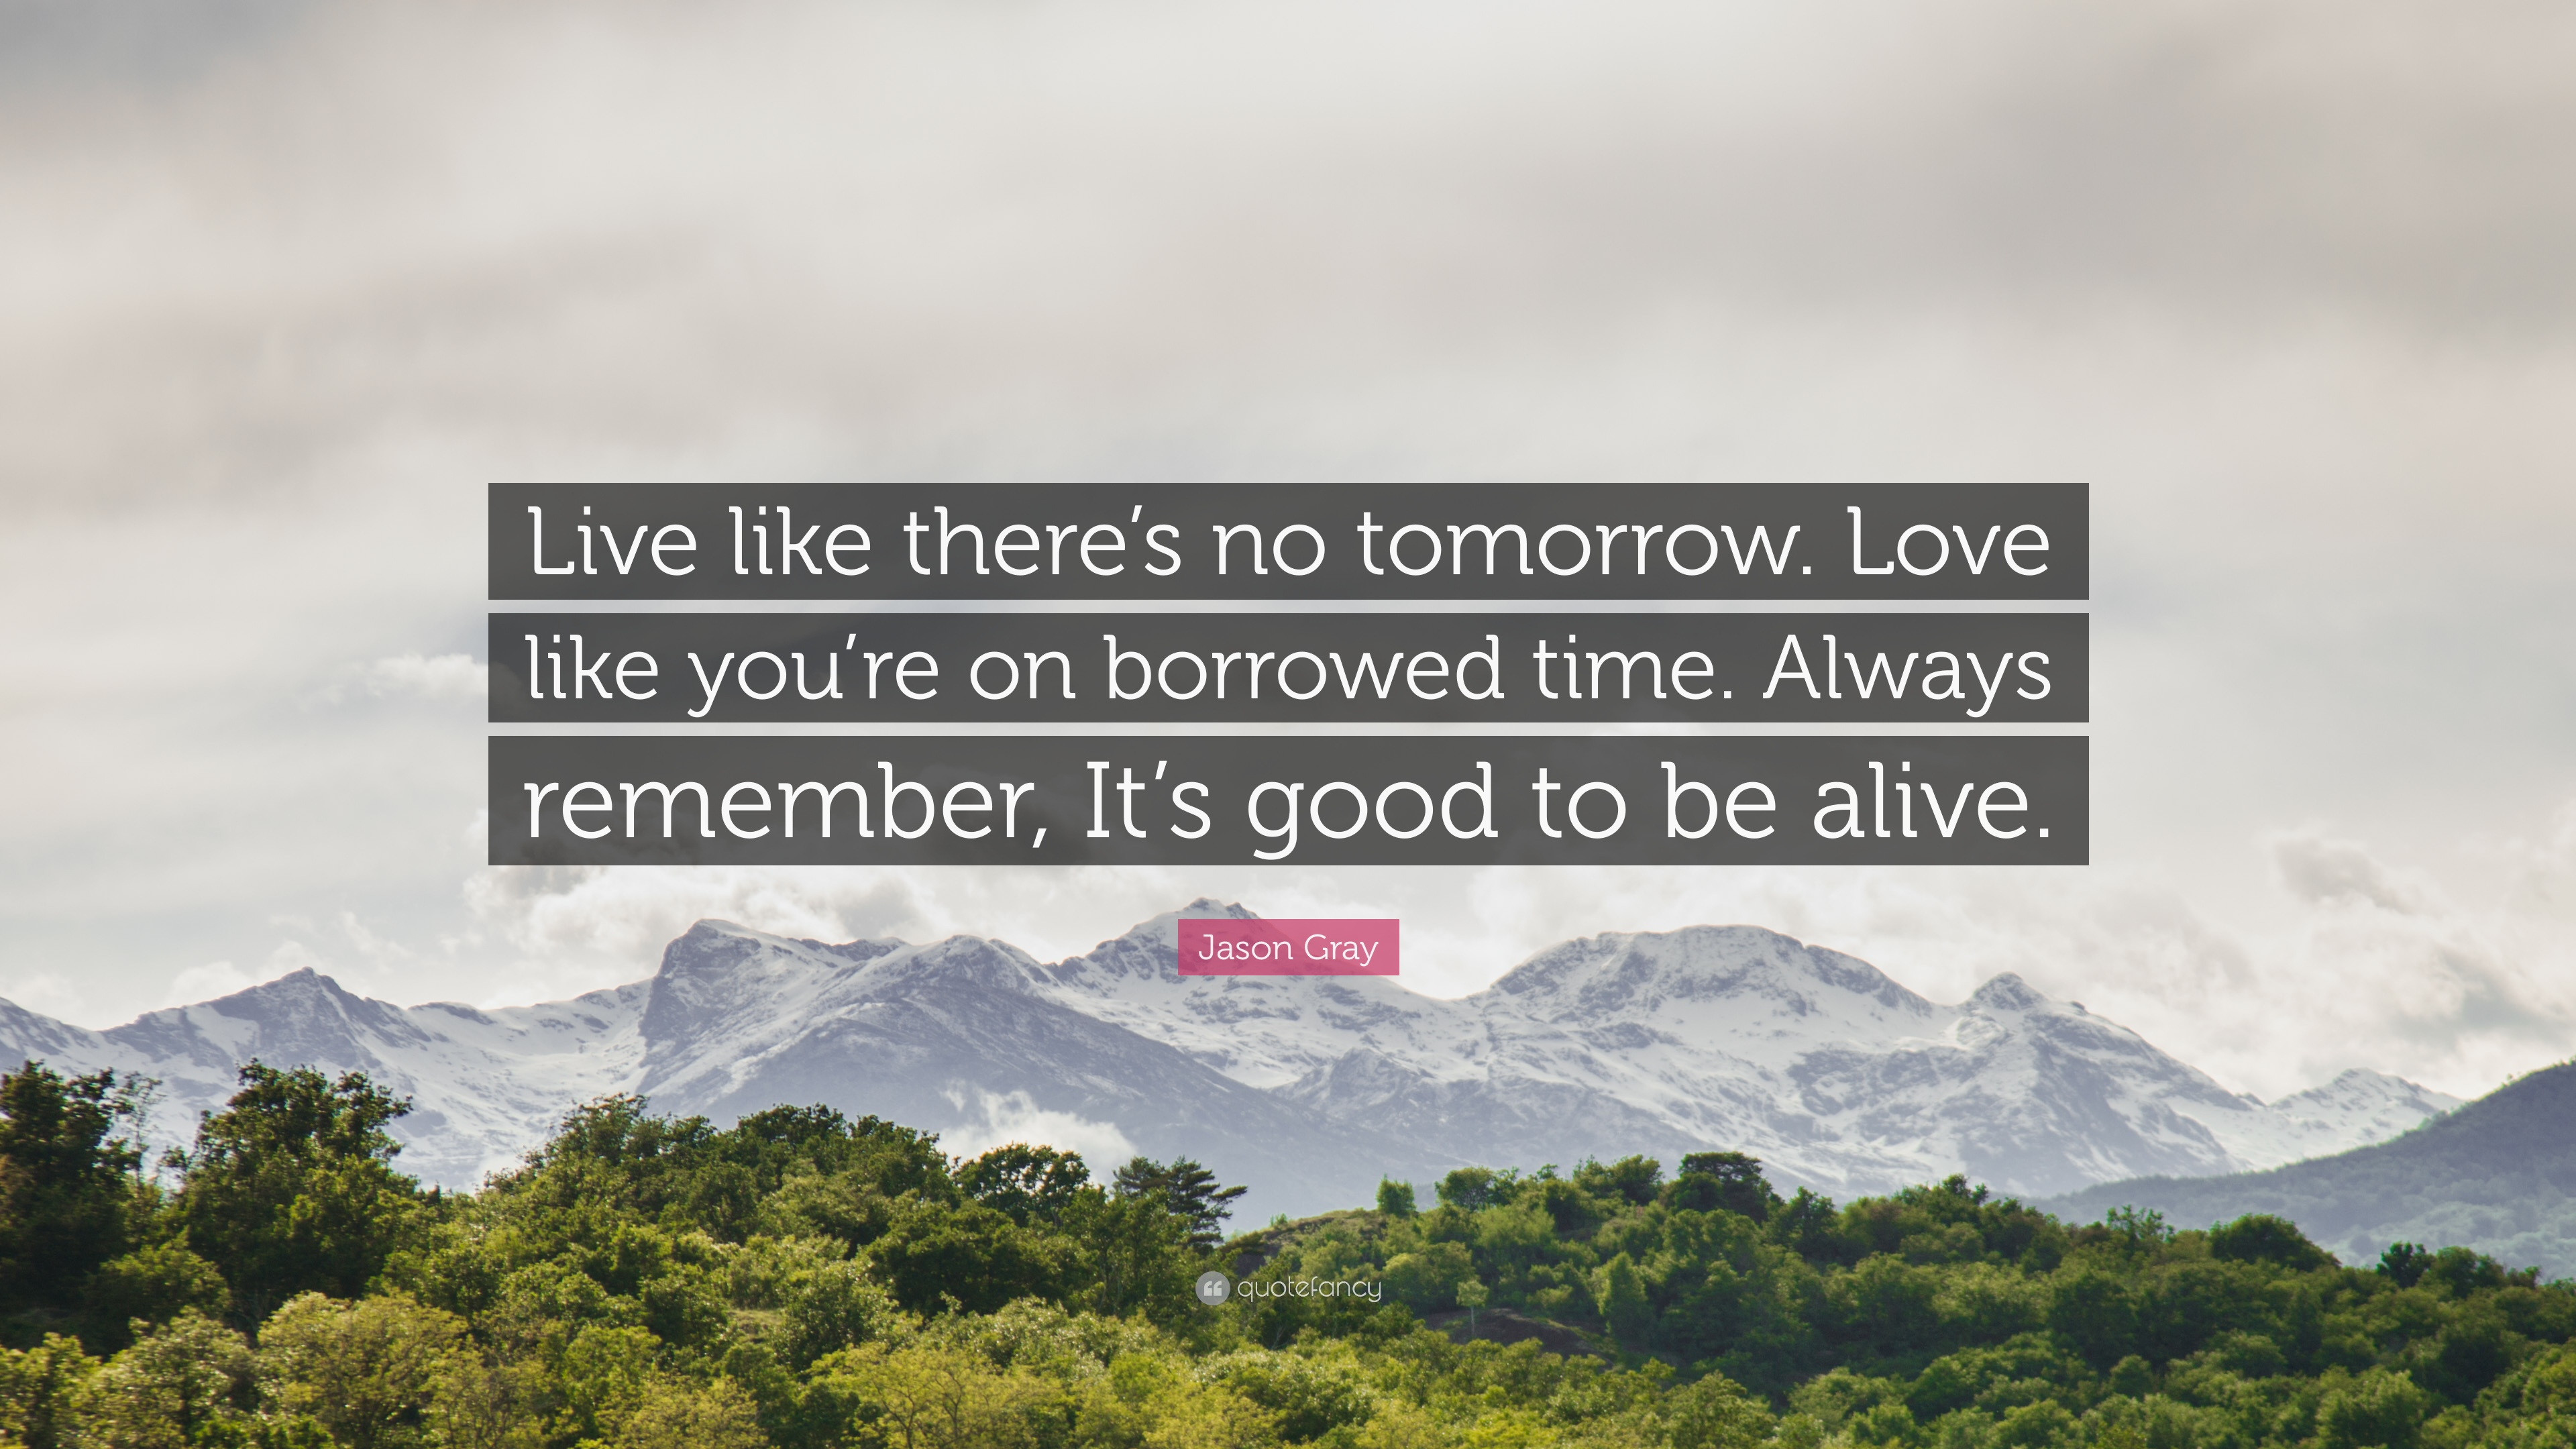 Imágenes De Love Like No Tomorrow Quotes